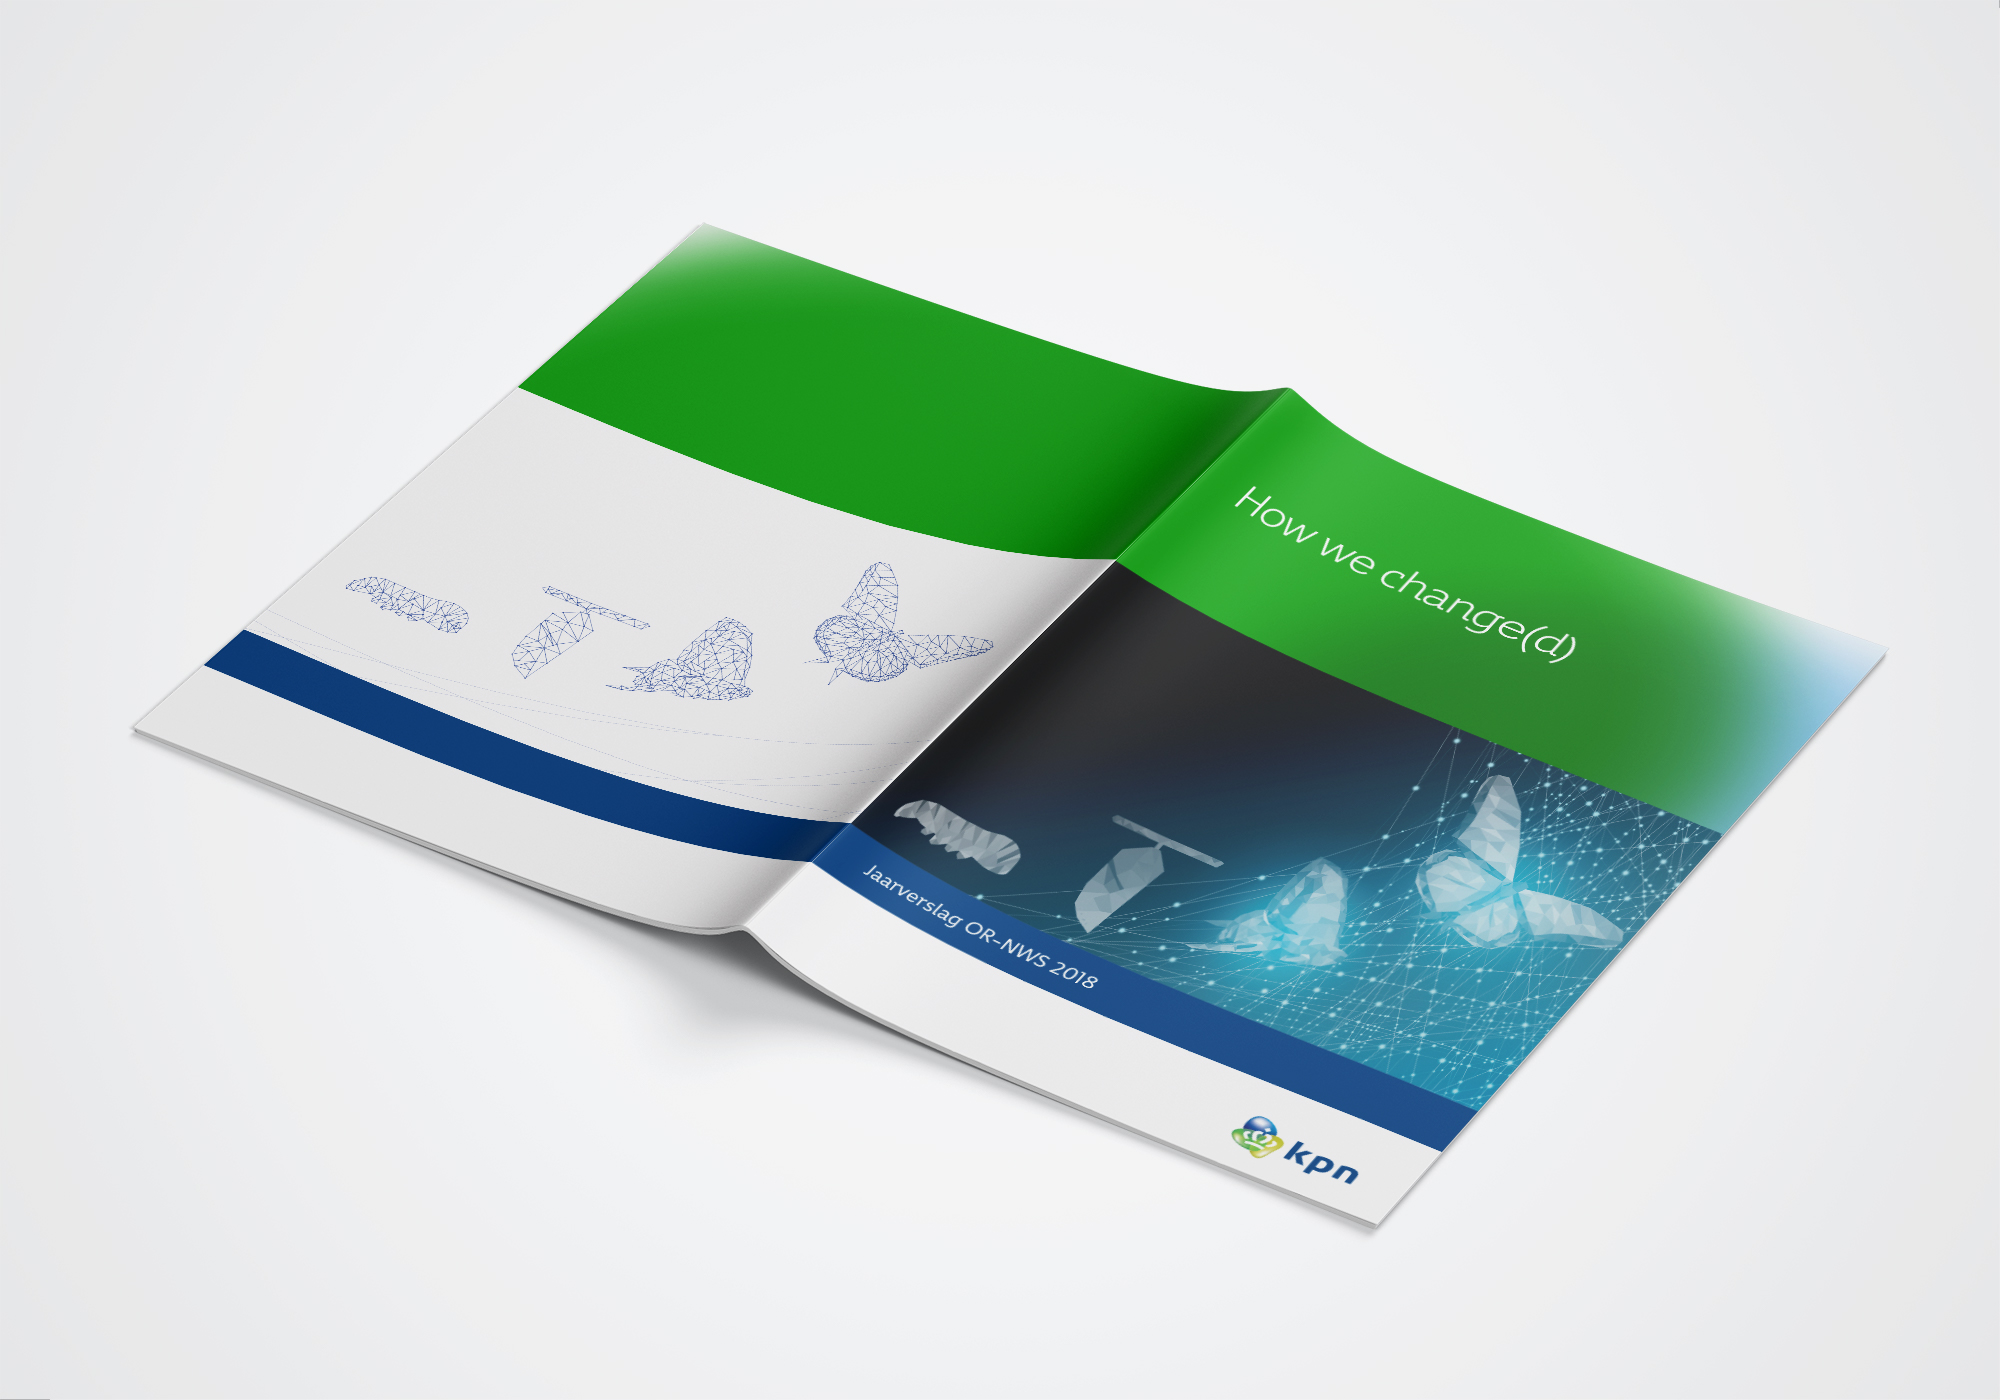 KPN – OR NWS ANNUAL 2018